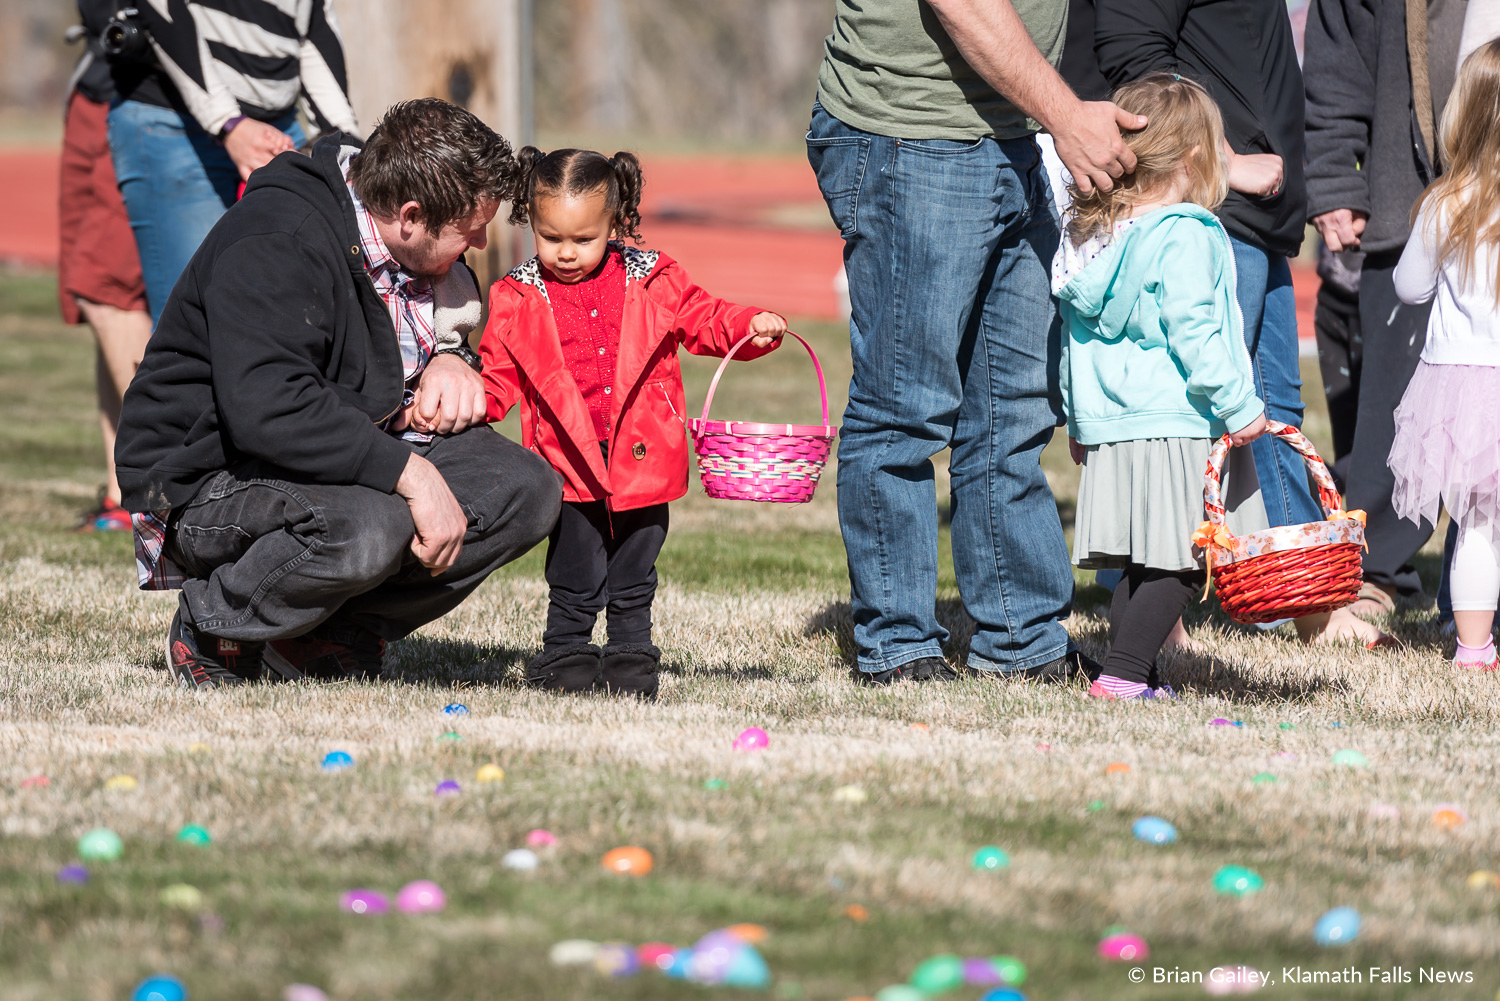 Children anxiously wait for the annual Easter Egg Scramble hosted at Oregon Tech. March 31, 2018 (Brian Gailey)